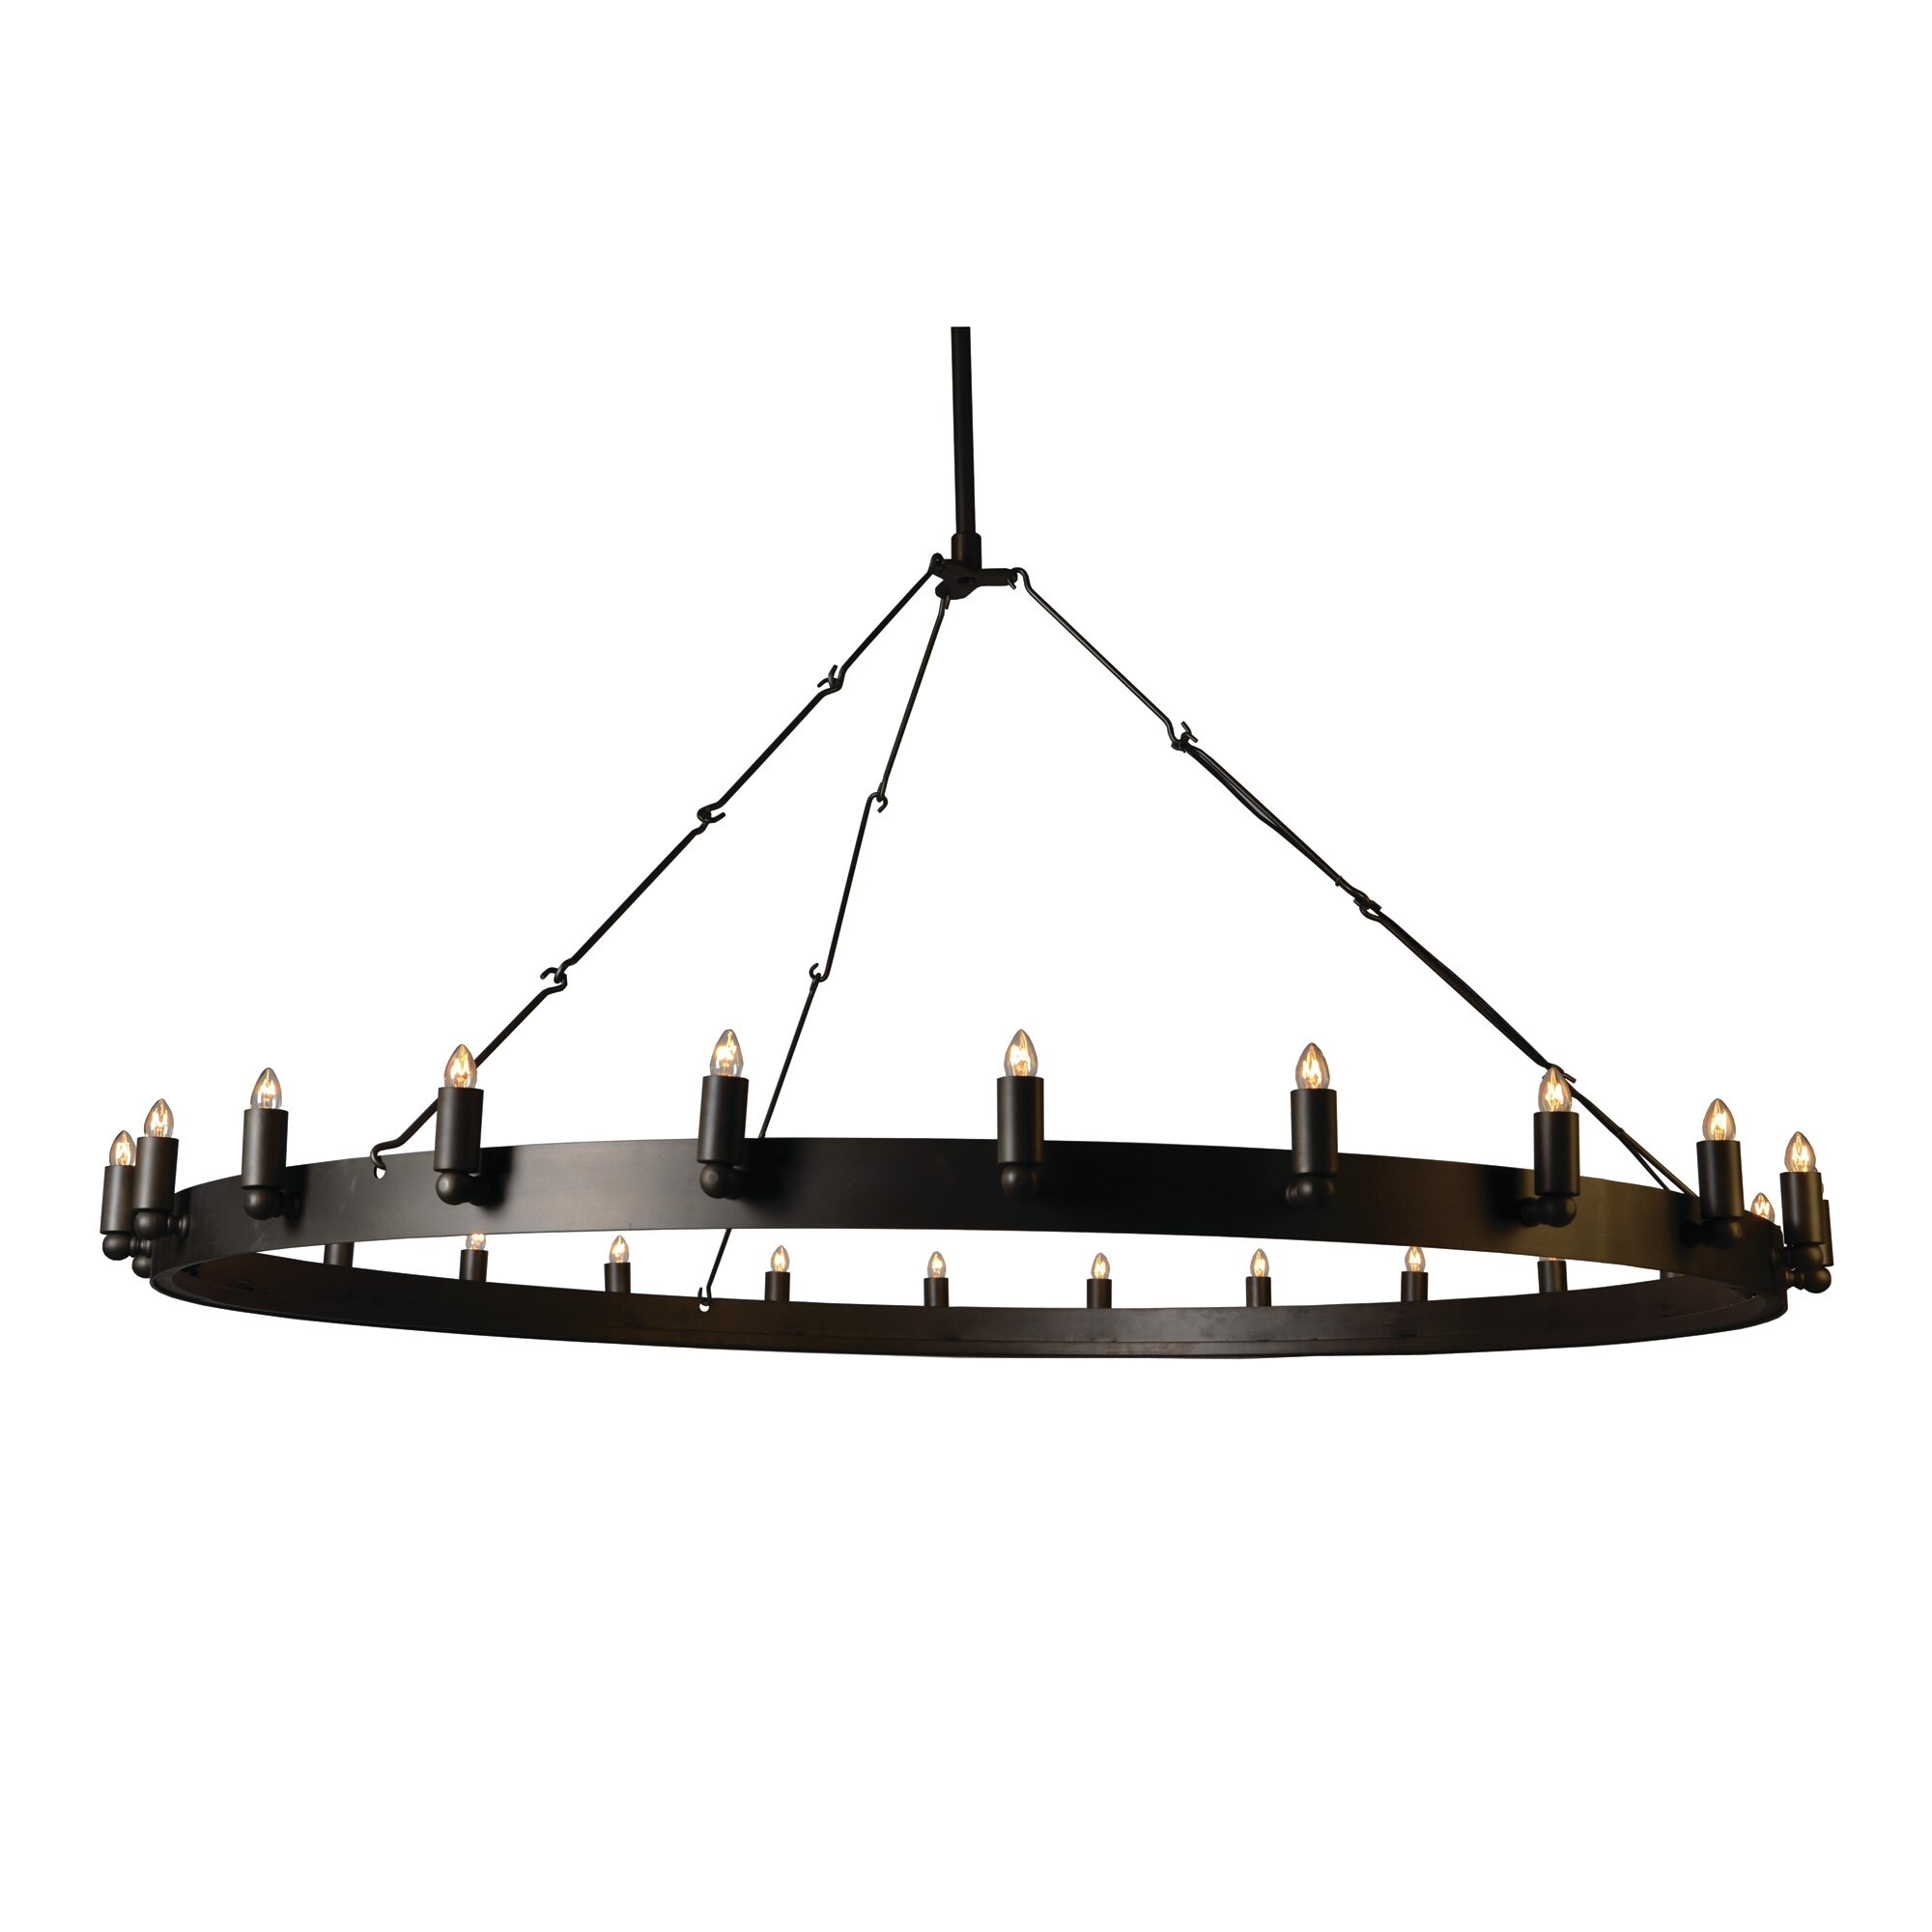 farrington 24 light candle style chandelier - Yosemite Home Decor